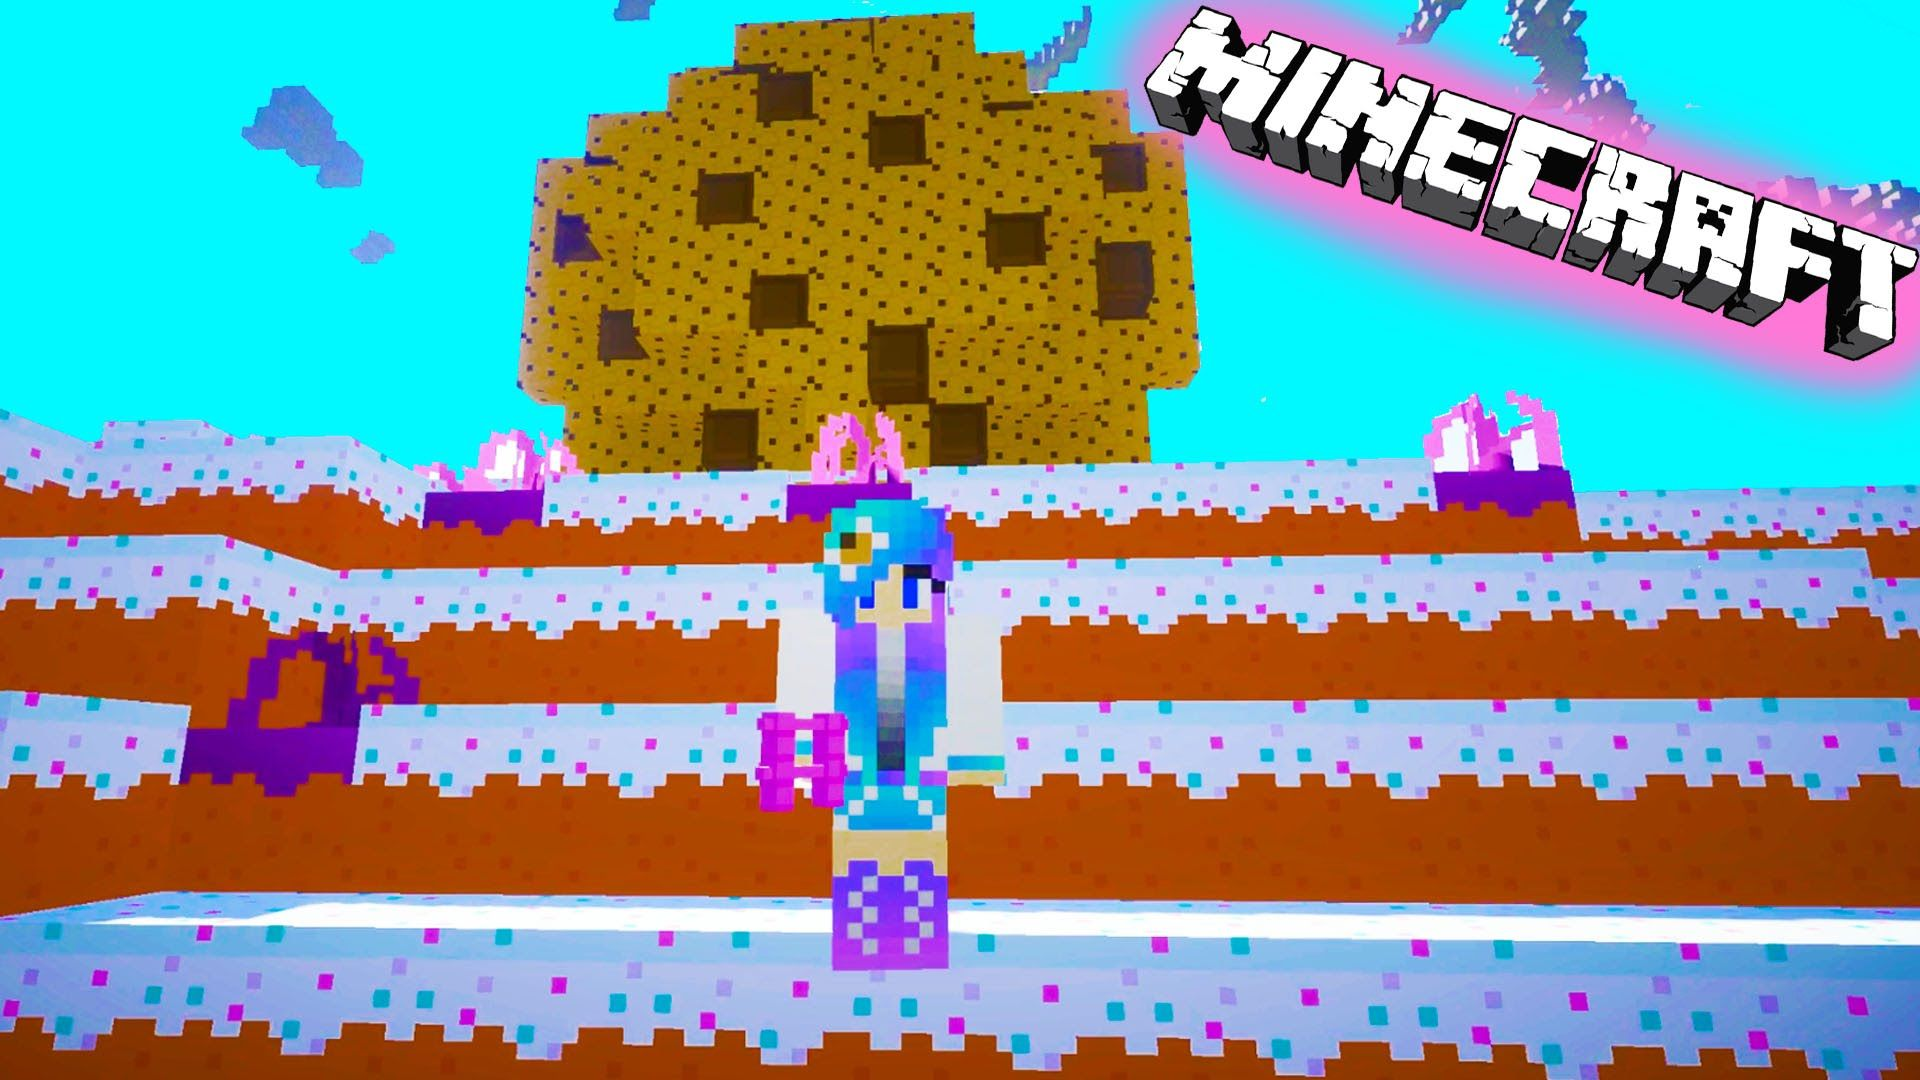 Cookieswirlc Plays Minecraft Candy Sugar Land Gaming Cake World Giant Co Cookie Swirl C How To Play Minecraft Giant Cookie